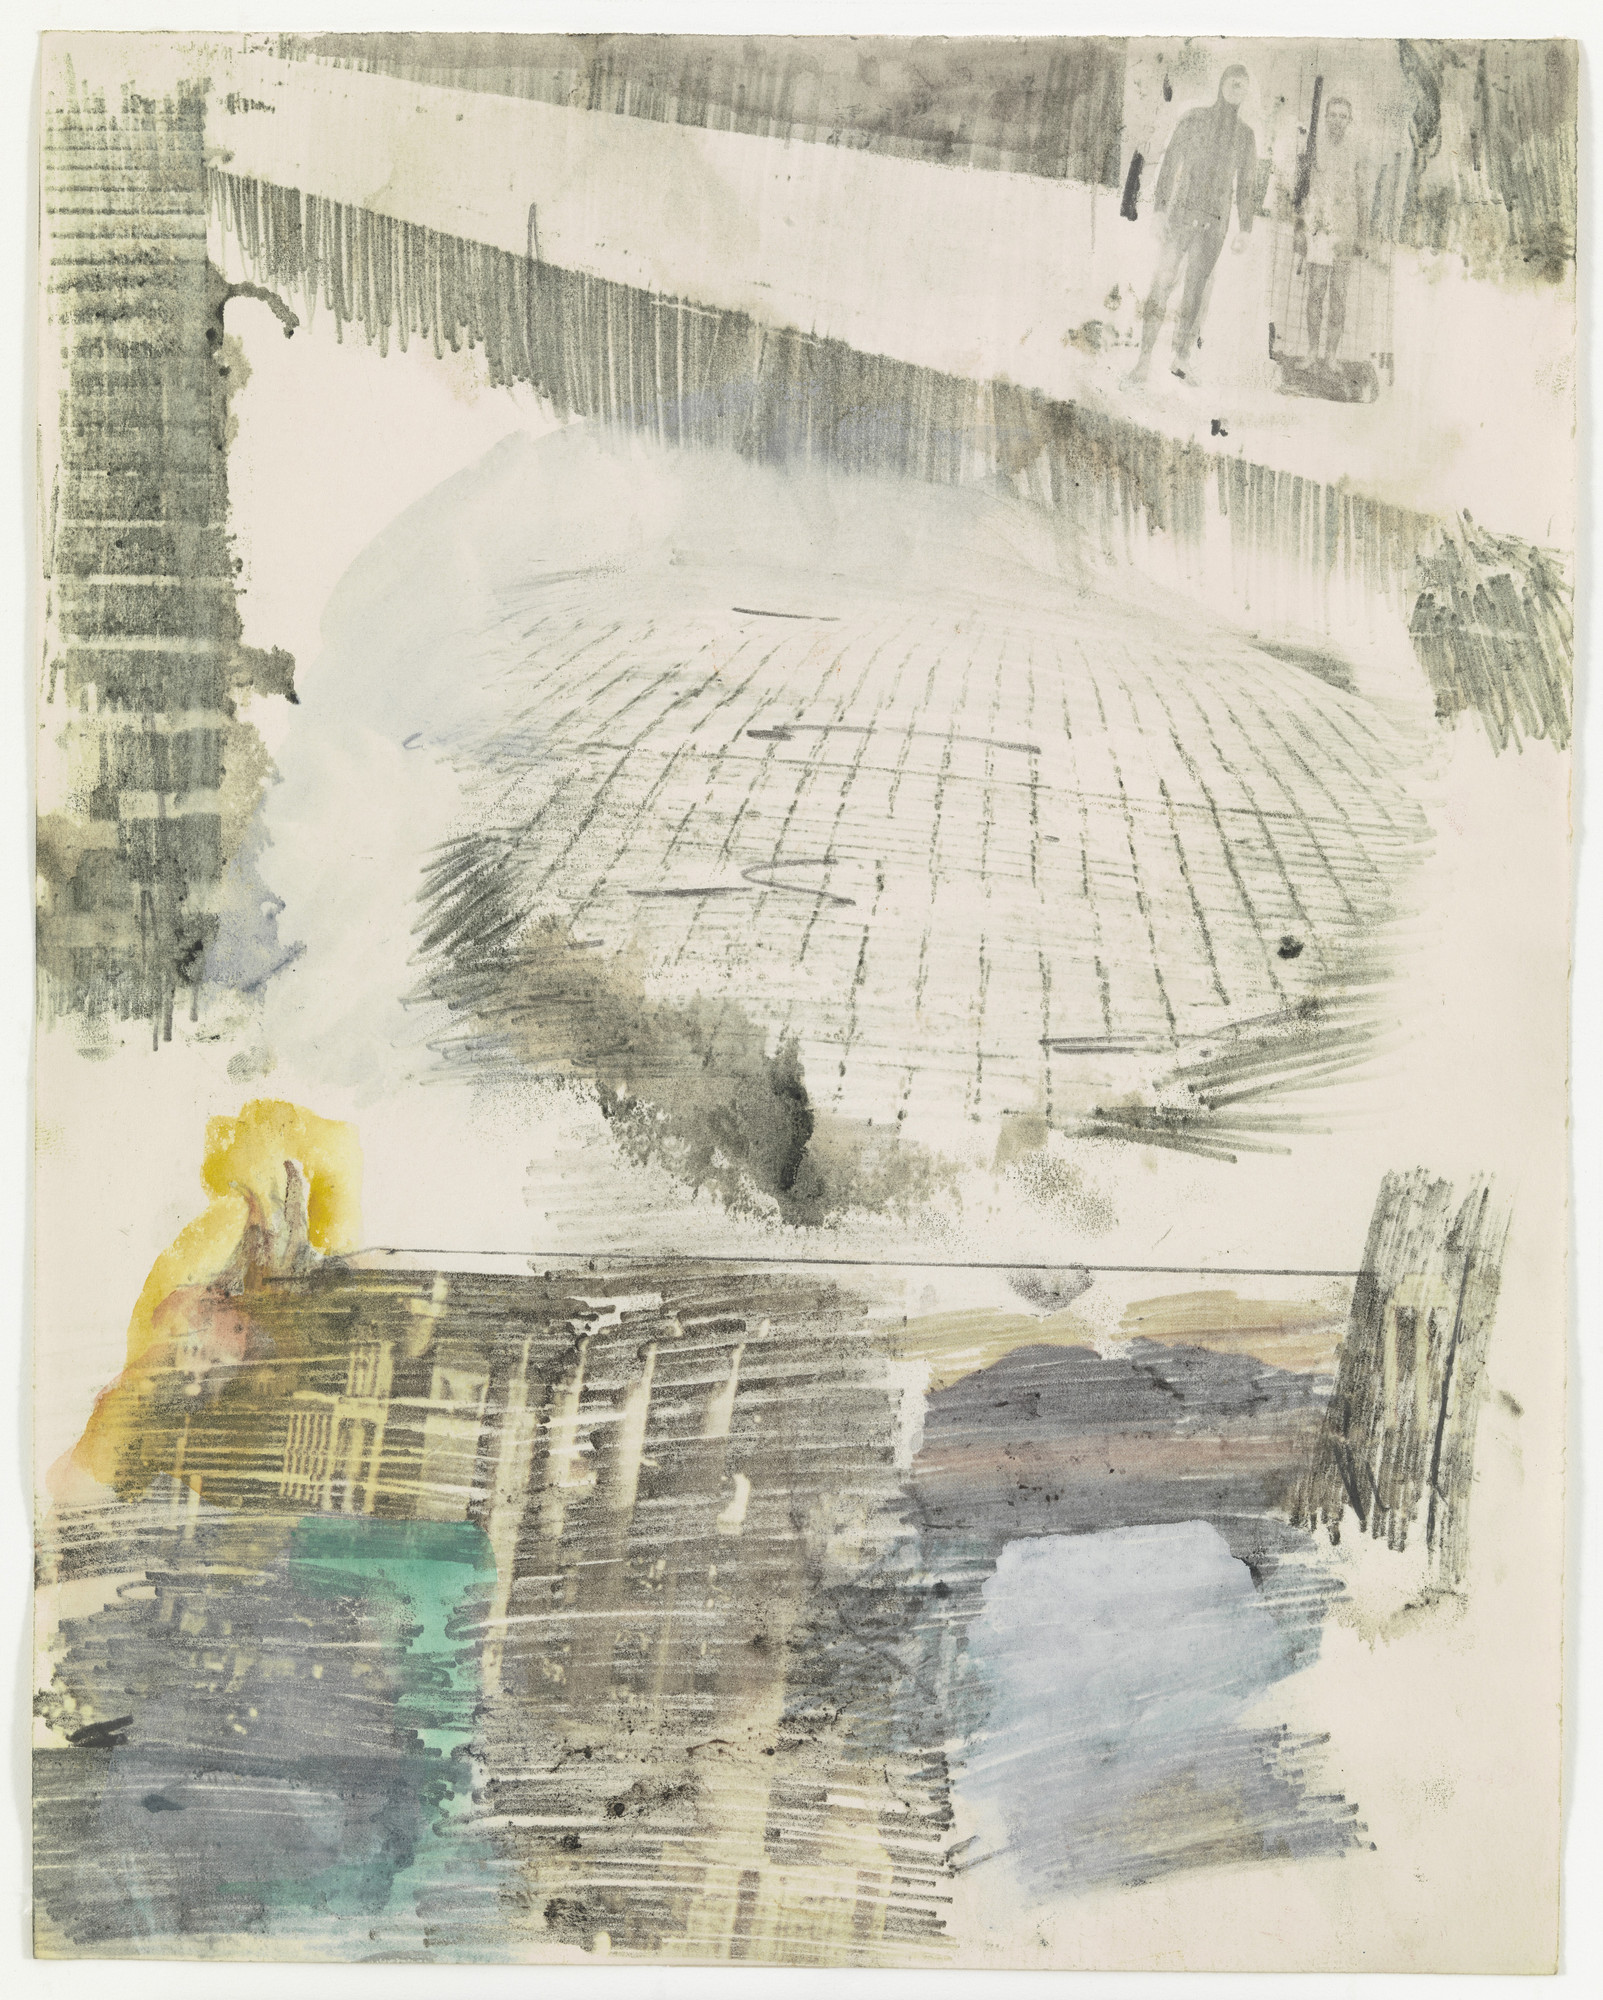 Robert Rauschenberg. Canto XXVI: Circle Eight, Bolgia 8, The Evil Counselors, from the series Thirty-Four Illustrations for Dante's Inferno. (1959-60)